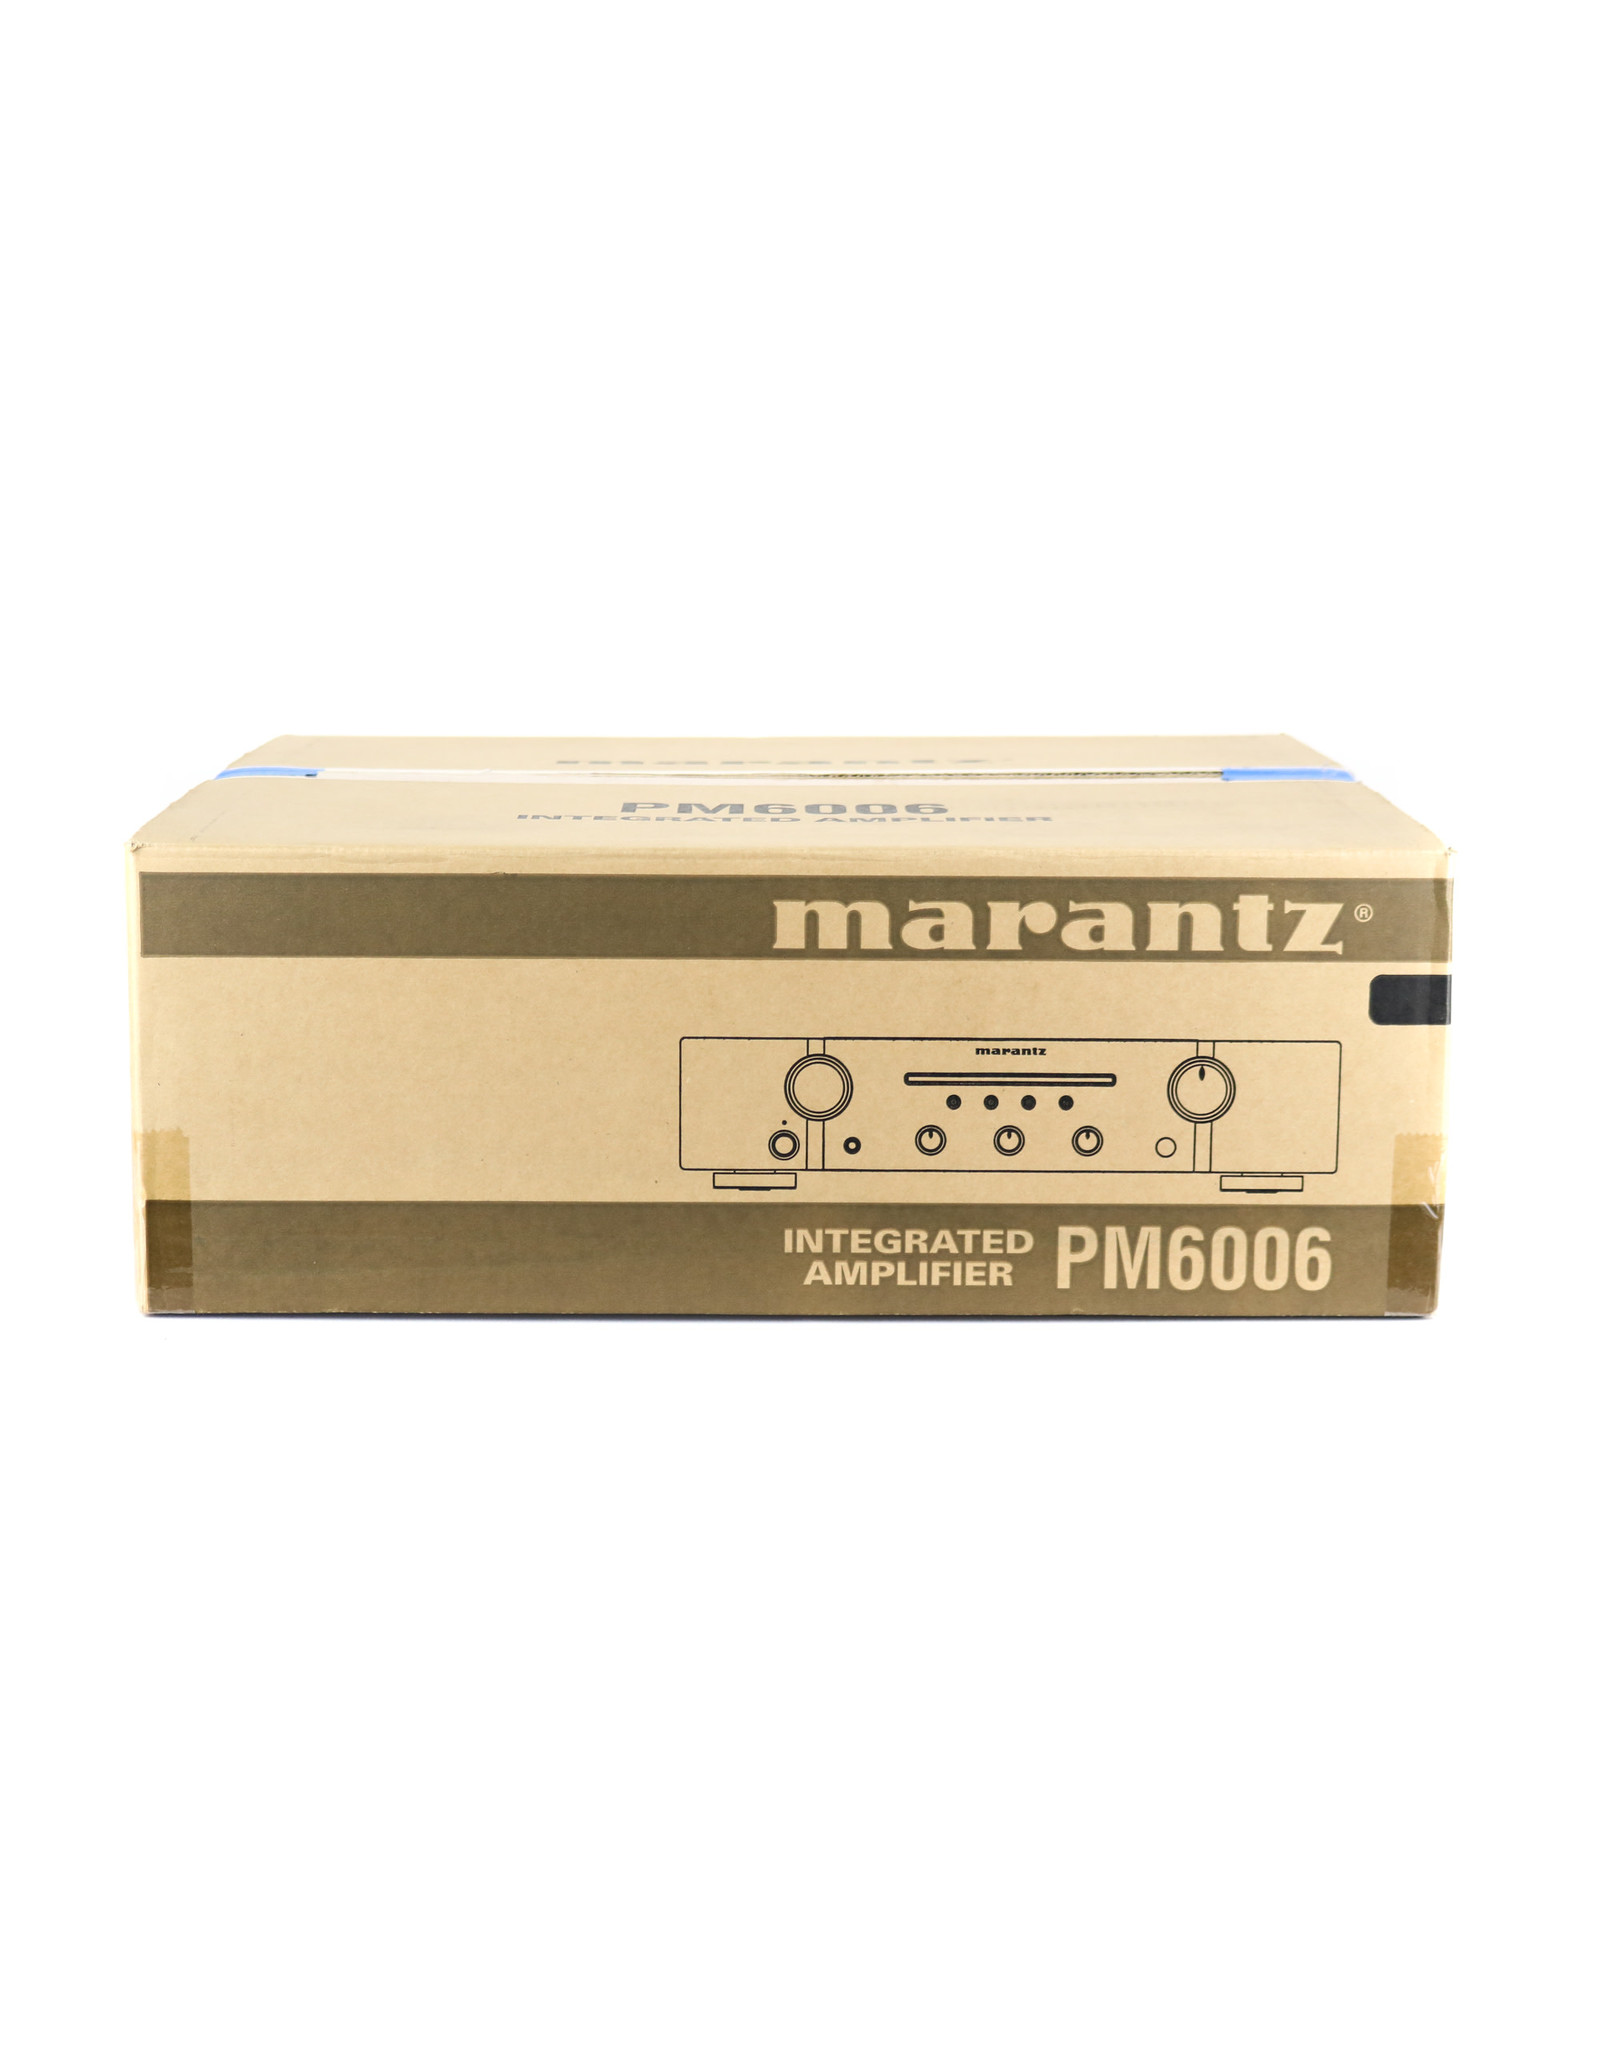 Marantz Marantz PM6006 Integrated Amp (Open Box) USED